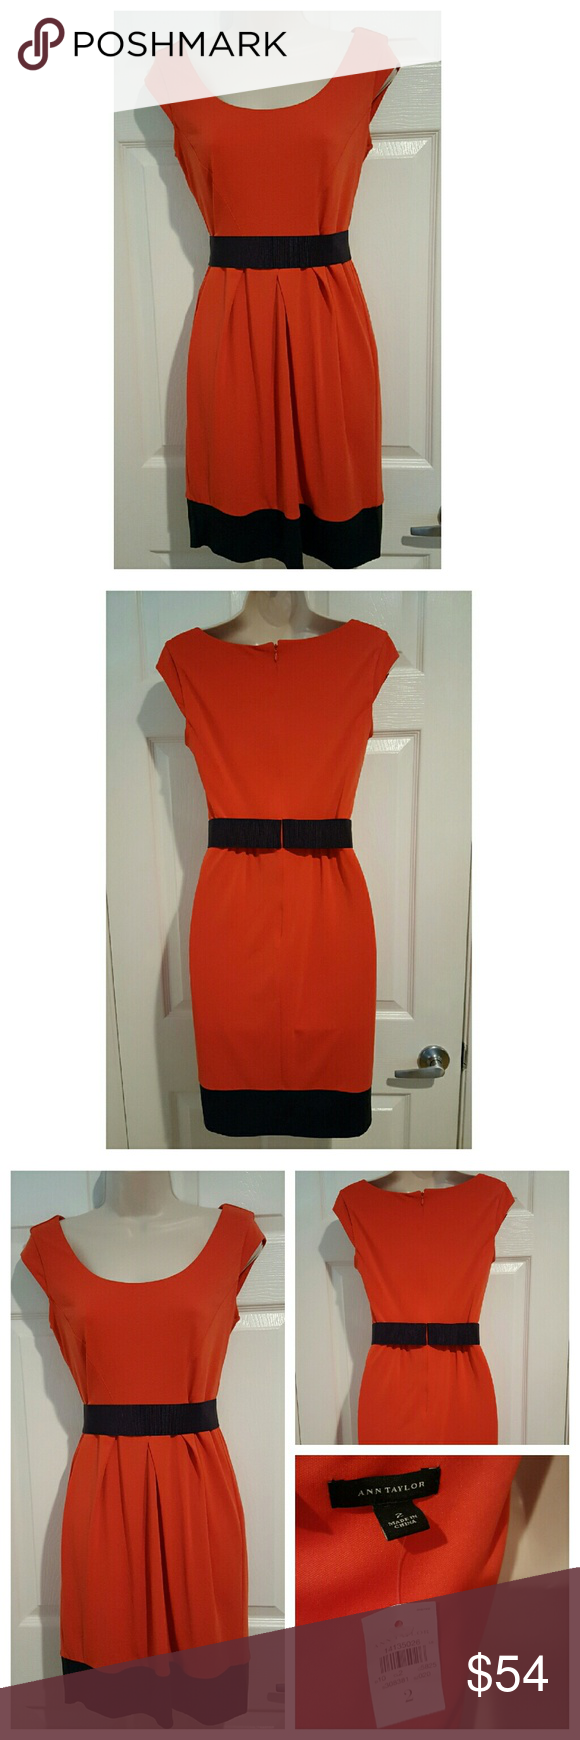 "NWT Orange & Navy Cap Sleeve Dress New with tags. Ann Taylor dress. Beautiful orange main color with Navy elastic belt and hem line. Includes thin lining underneath to prevent see through issues.   Measurements:    32"" Relaxed Bust   14.5"" Flat Waist   35"" Length  Shell - 95%, 5% Spandex Lining - 100% Polyester Ann Taylor Dresses"